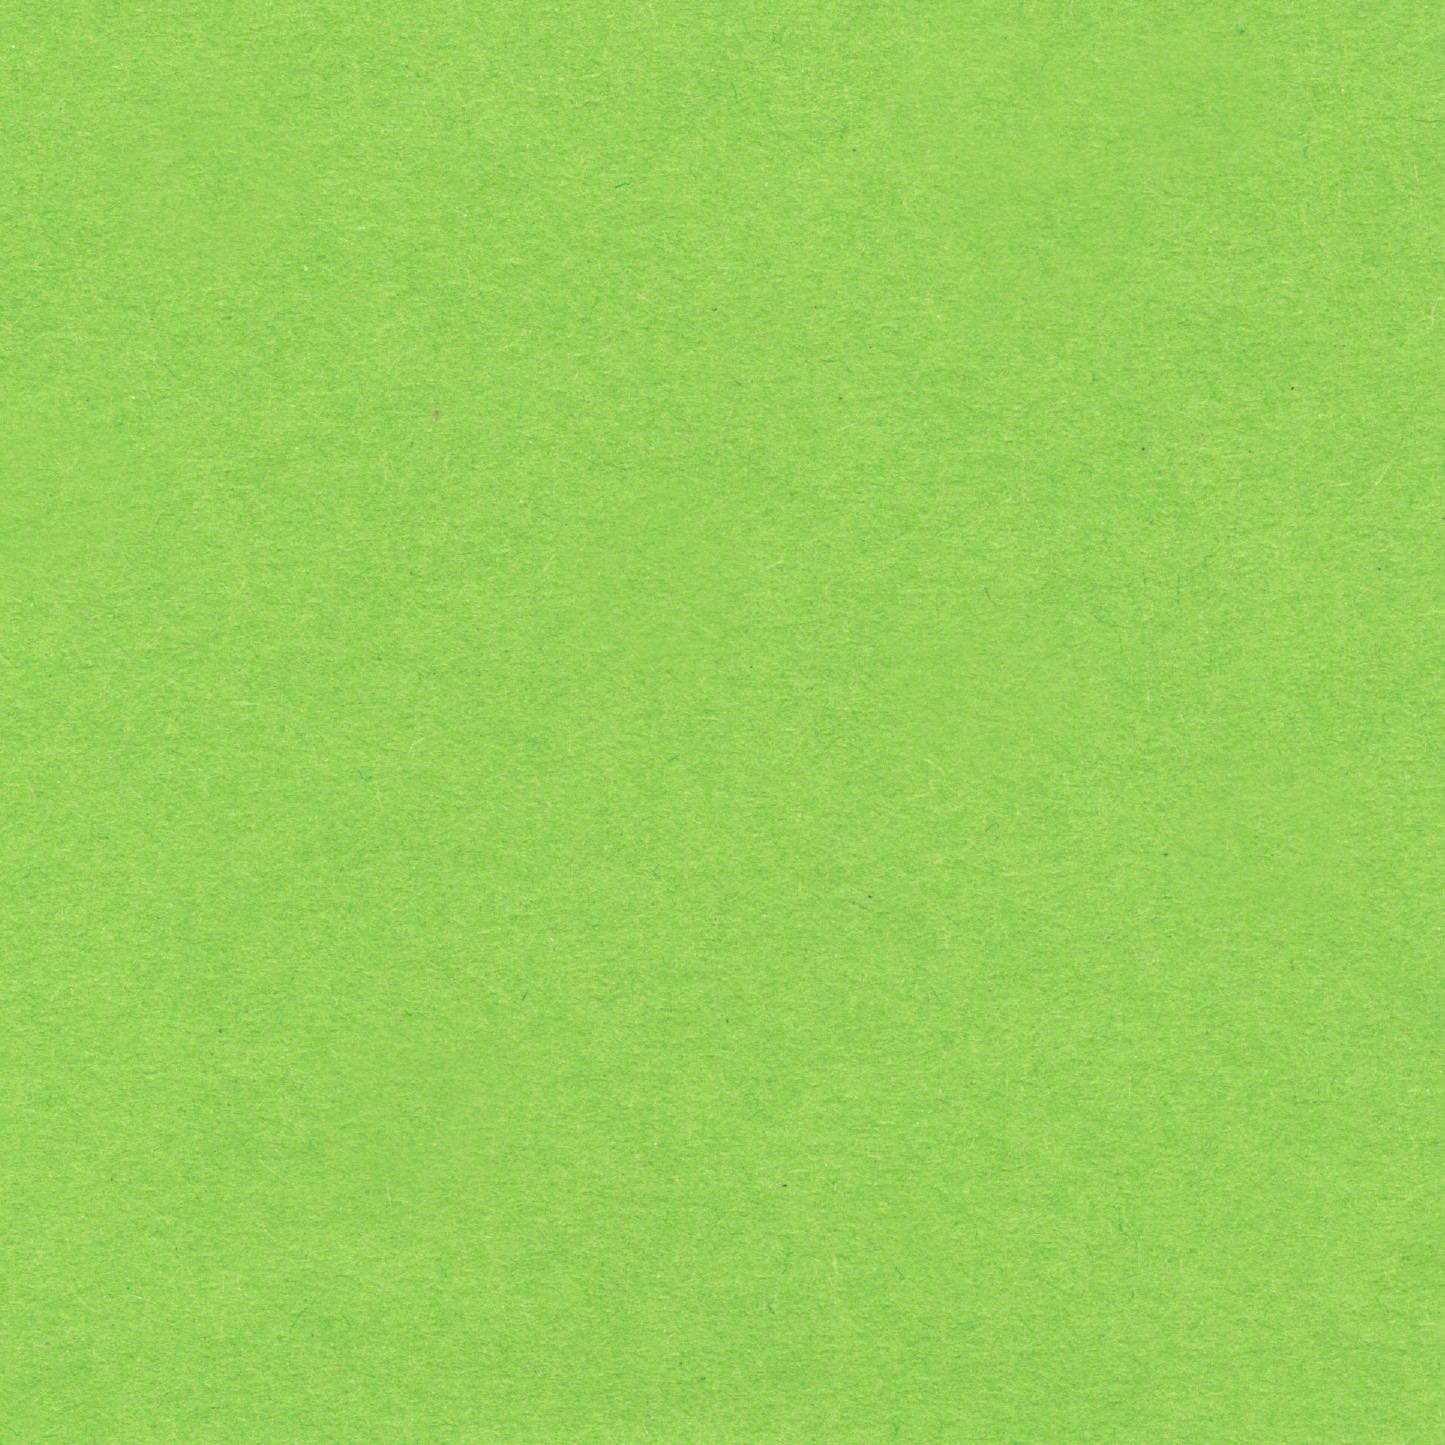 Green - Lime 150gsm